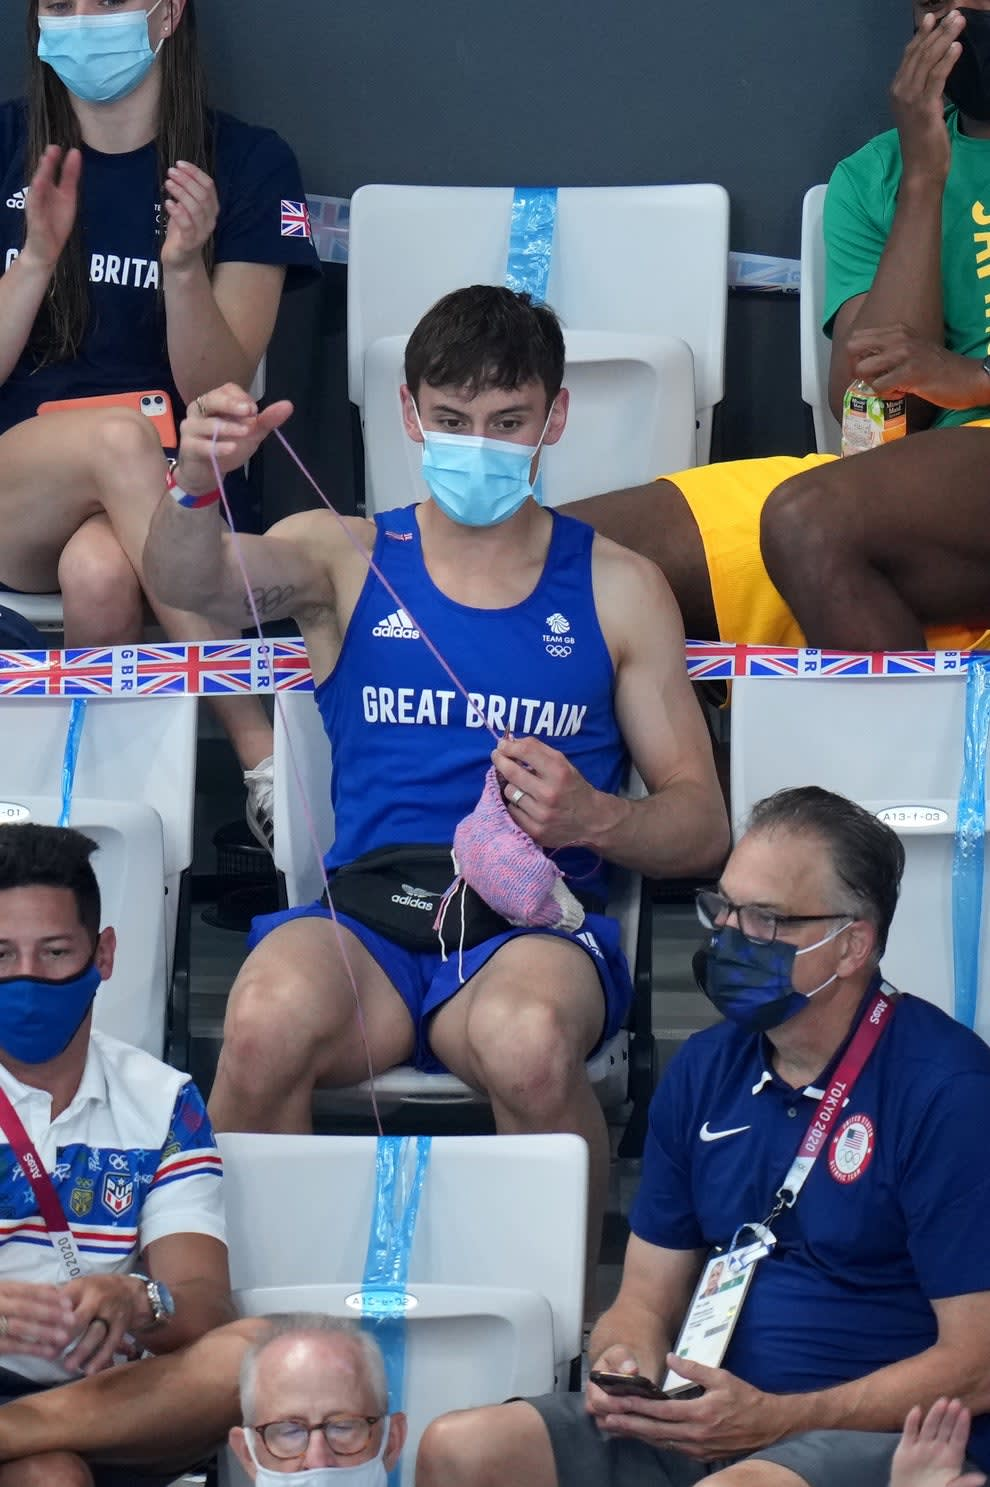 Tom knitting in the stands as he looks at the diving pool